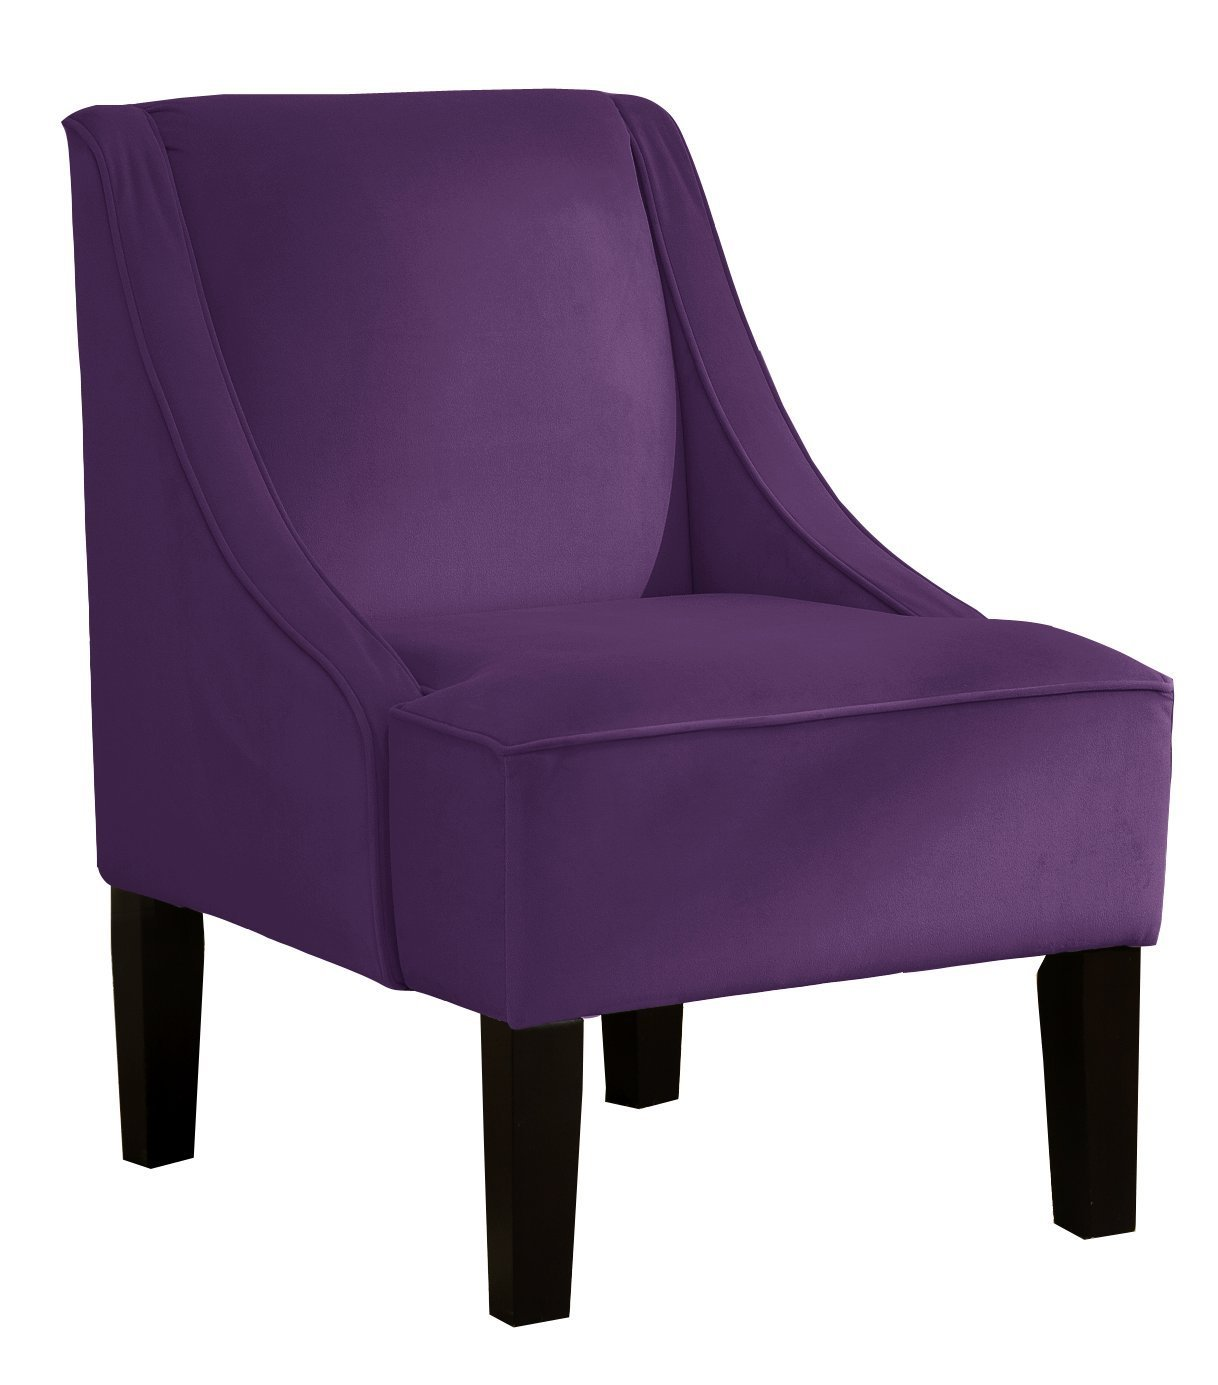 Purple Living Room Chairs 5 Best Purple Chairs Different Purple Dream Tool Box